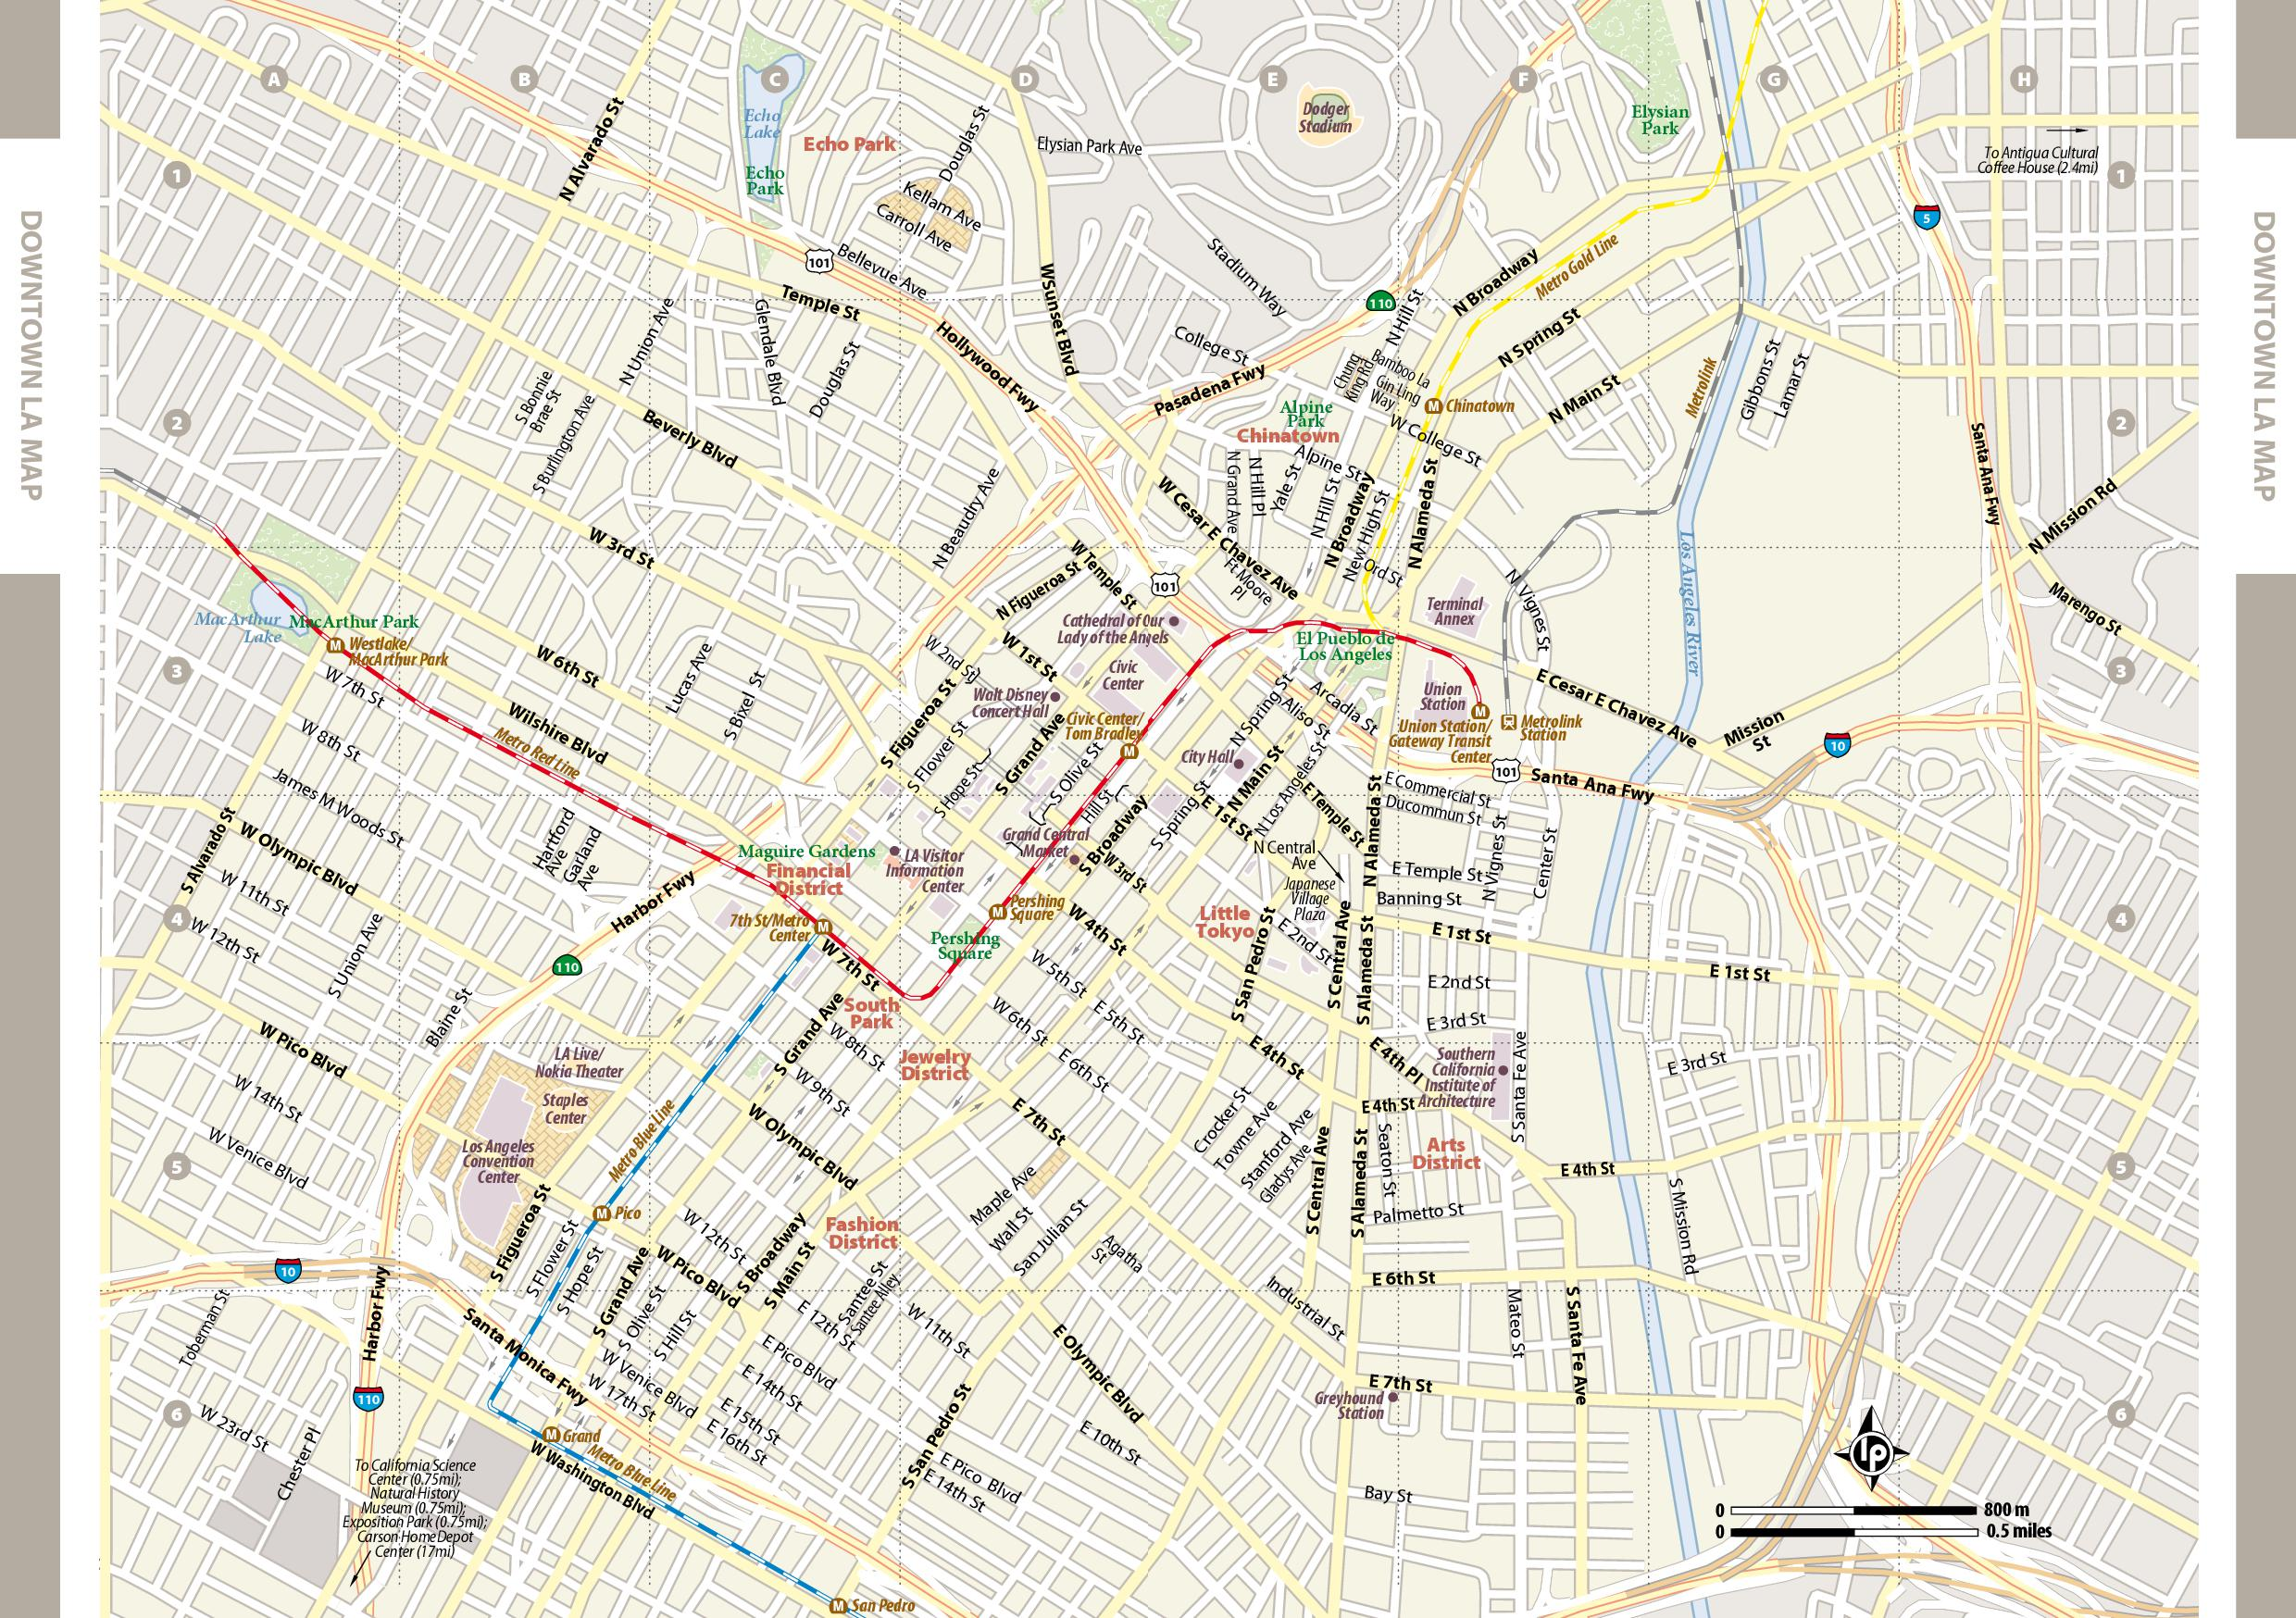 Los Angeles Maps California US Maps Of LA Los Angeles - Los angeles us map